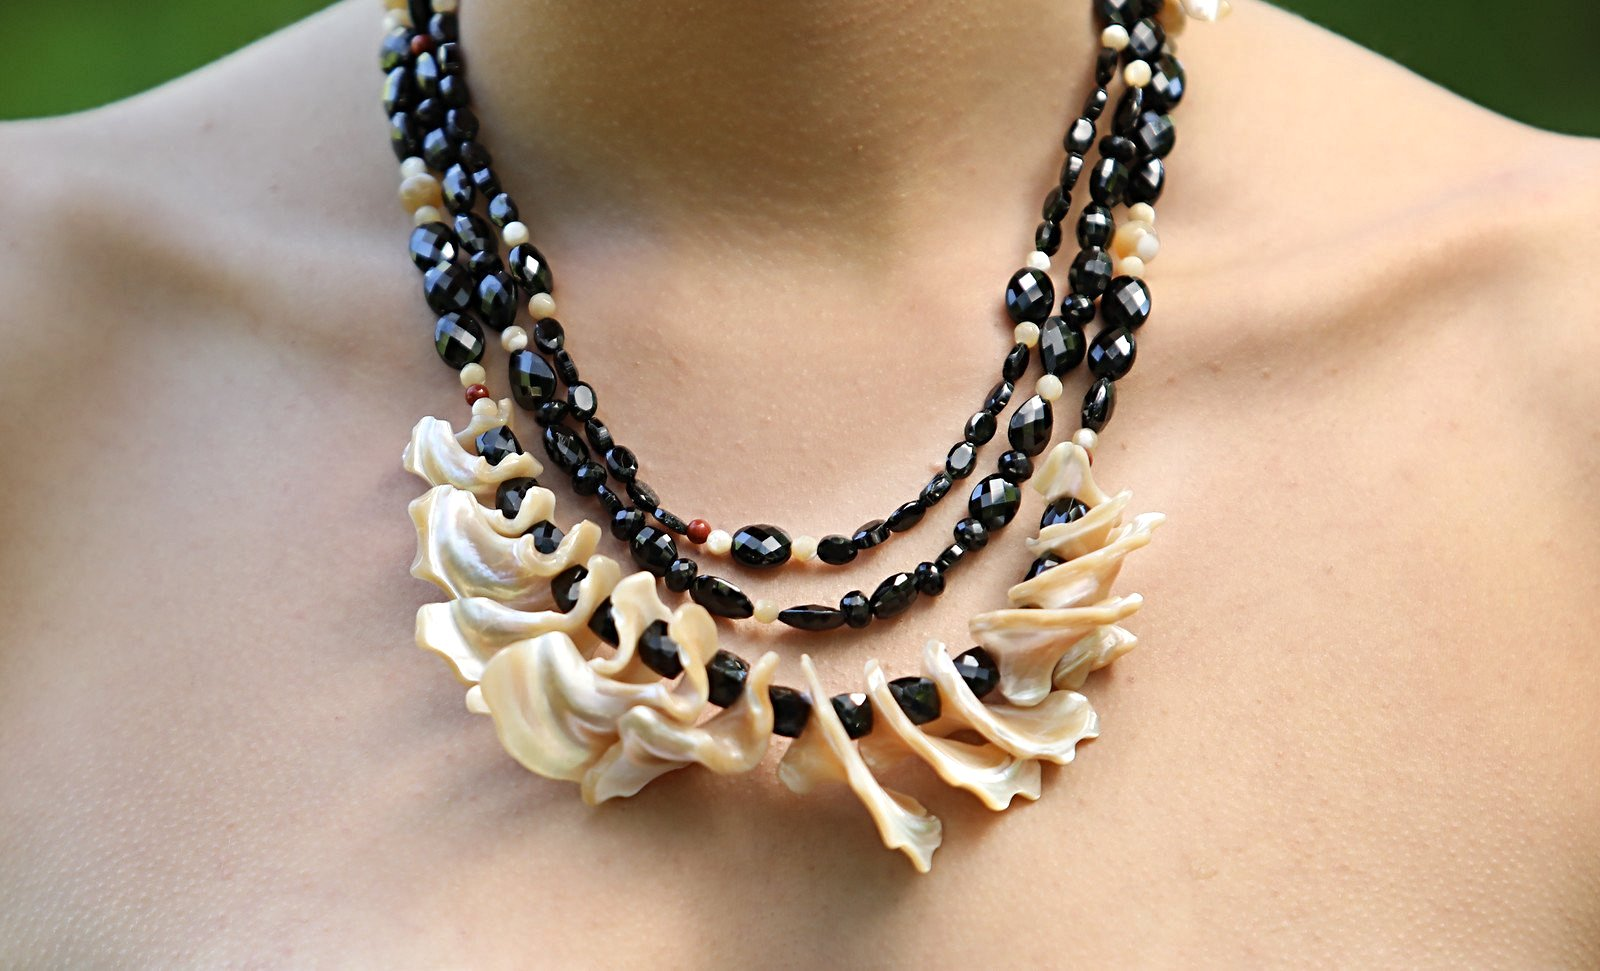 "White Orchid Studios | Made in the USA | Handcrafted couture jewelry inspired by nature. | This necklace features a dramatic three-strand bib of black spinel and mother of pearl. Look for unexpected shapes, configurations, along with pops of red jasper. This necklace ends in our silver, hand-carved vanilla bean clasp. 20"" $810"